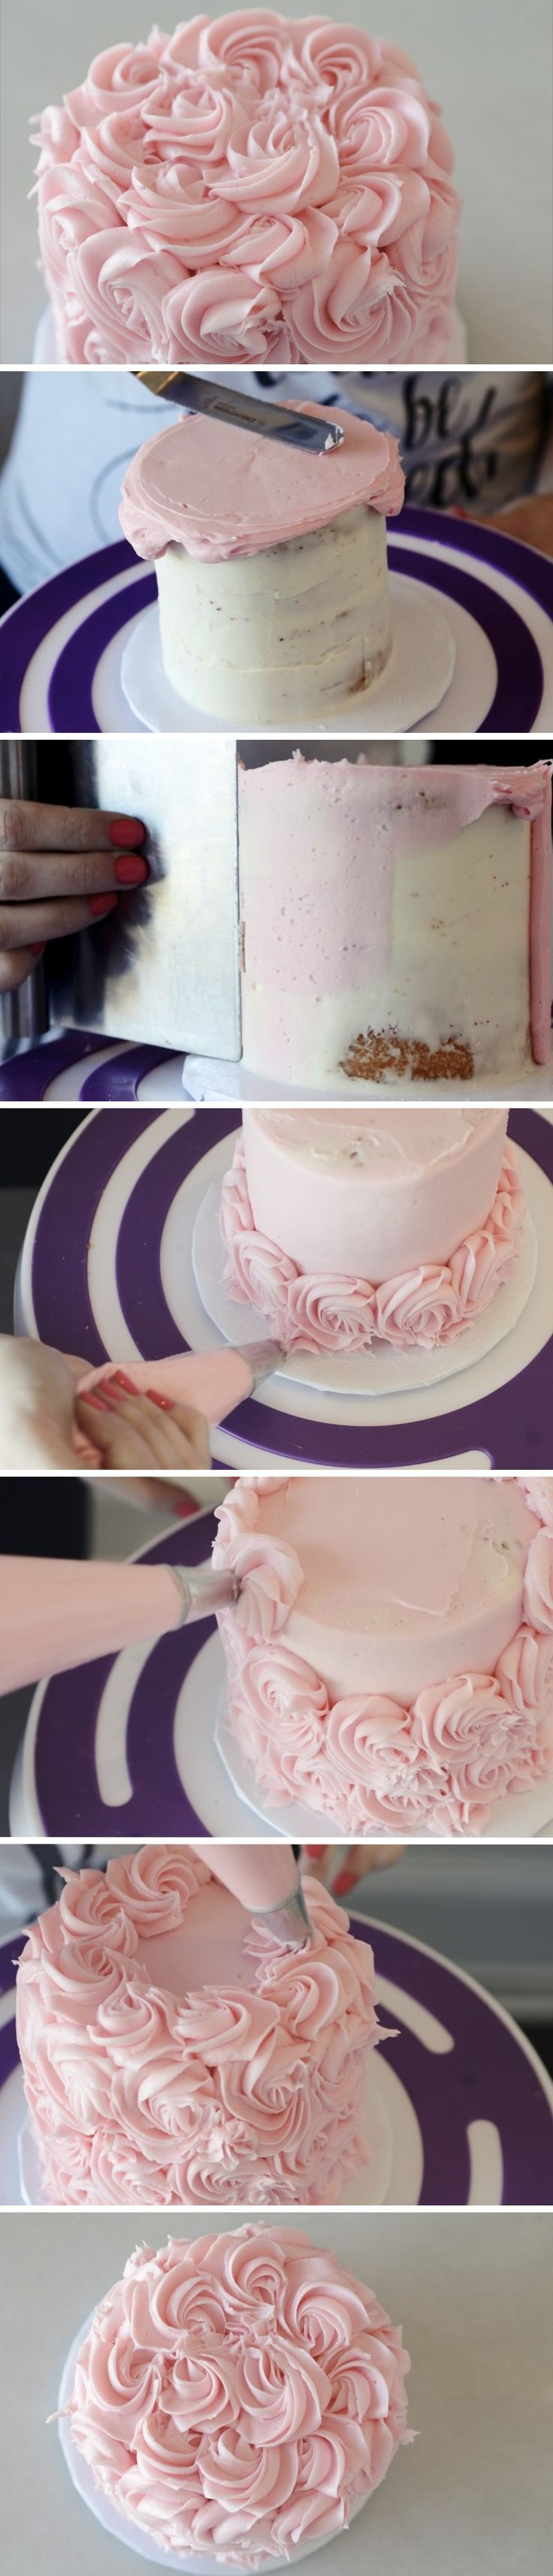 Cake Decoration Roses : 25+ best Rose Frosting ideas on Pinterest Cupcake ...